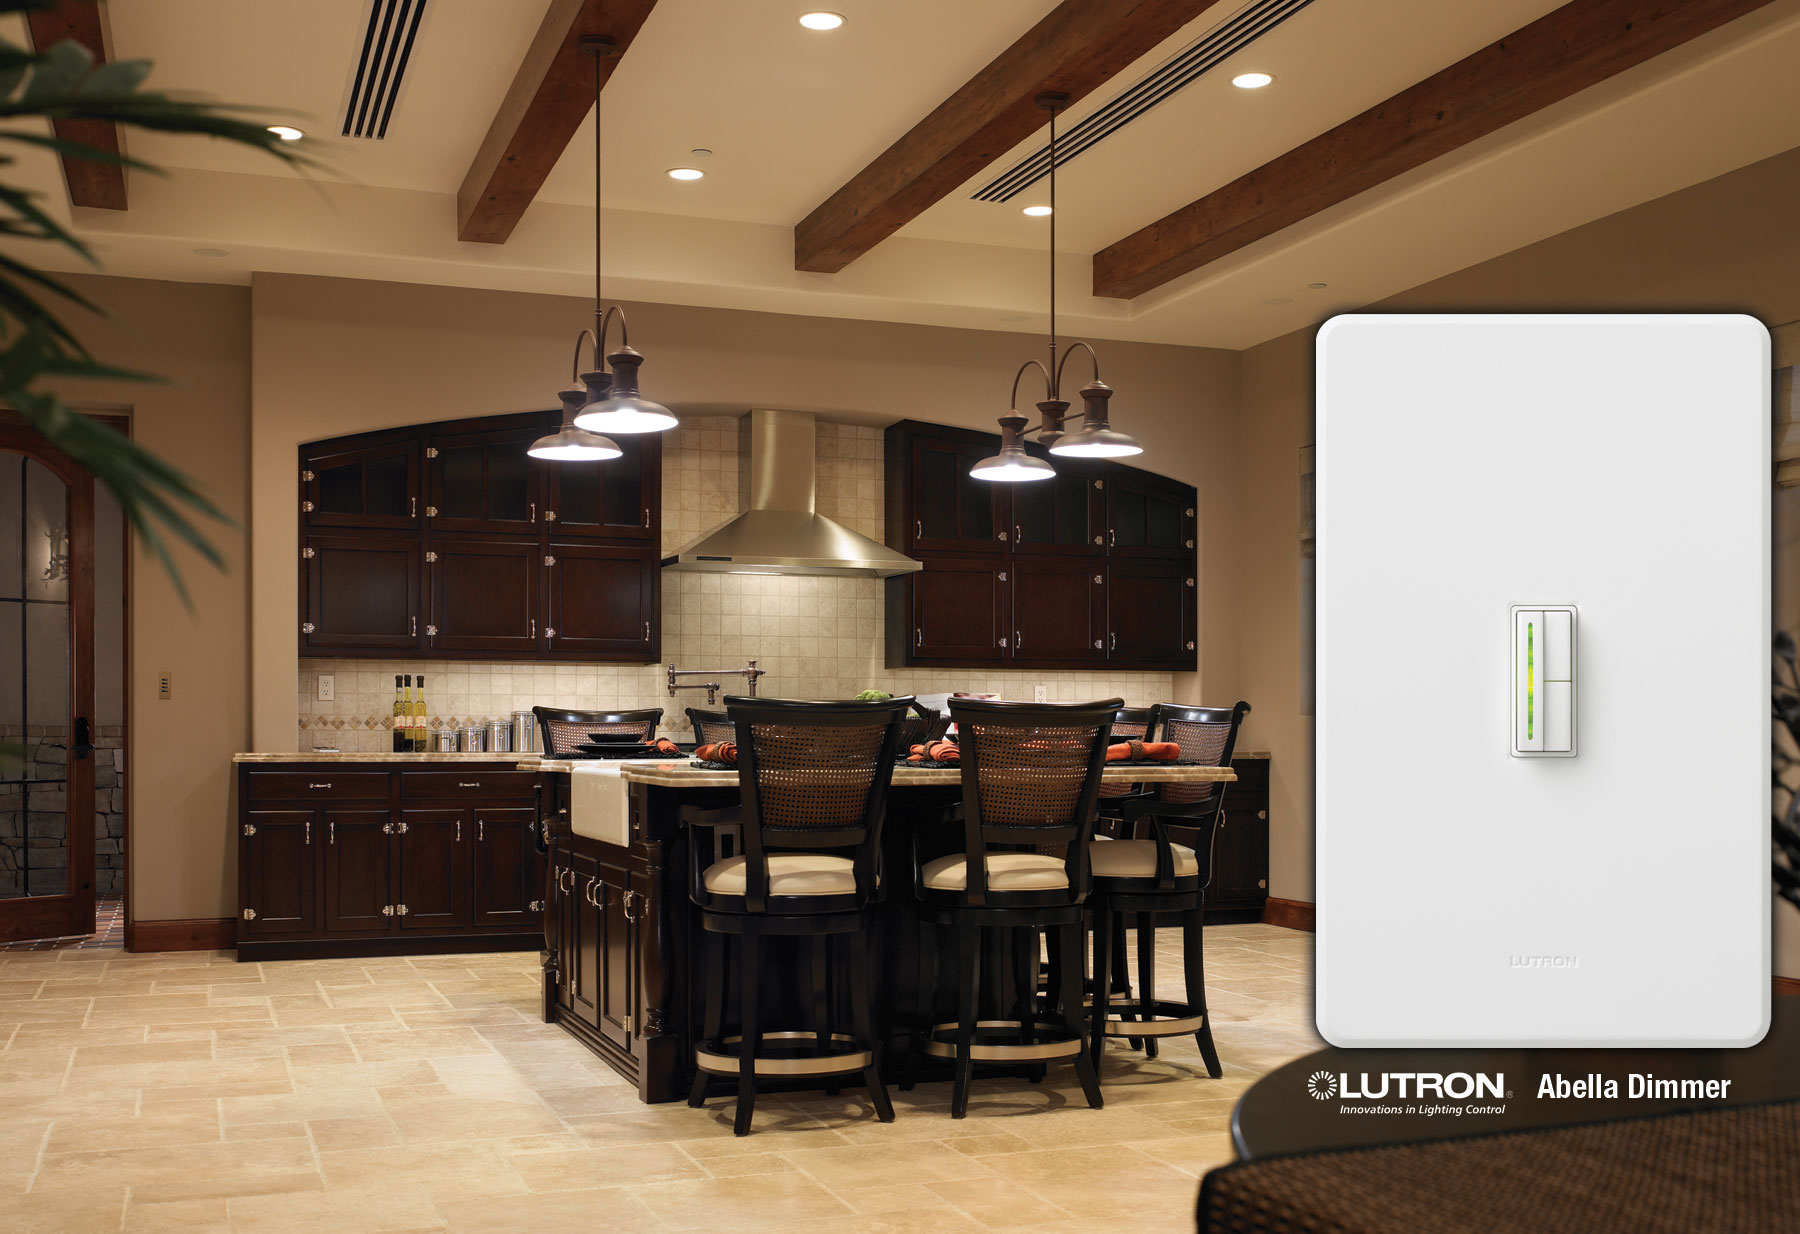 Led Monorail Lighting Kits Lutron Lighting Controls Save Money | Rensen House Of Lights